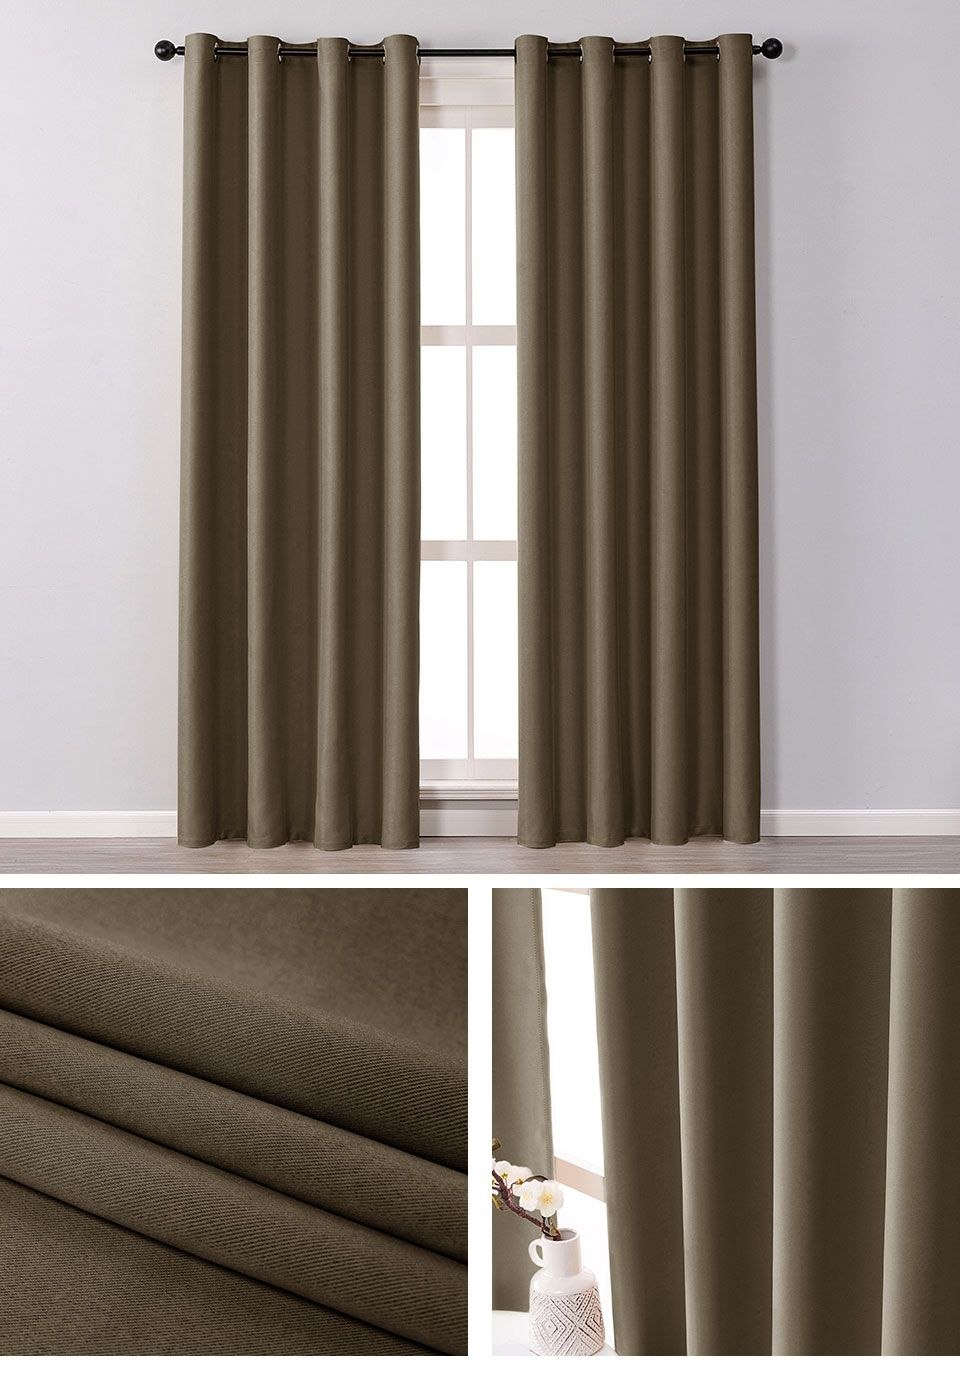 Modern Blackout Curtains For Living Room Bedroom Window Treatment Blinds Solid Ebay